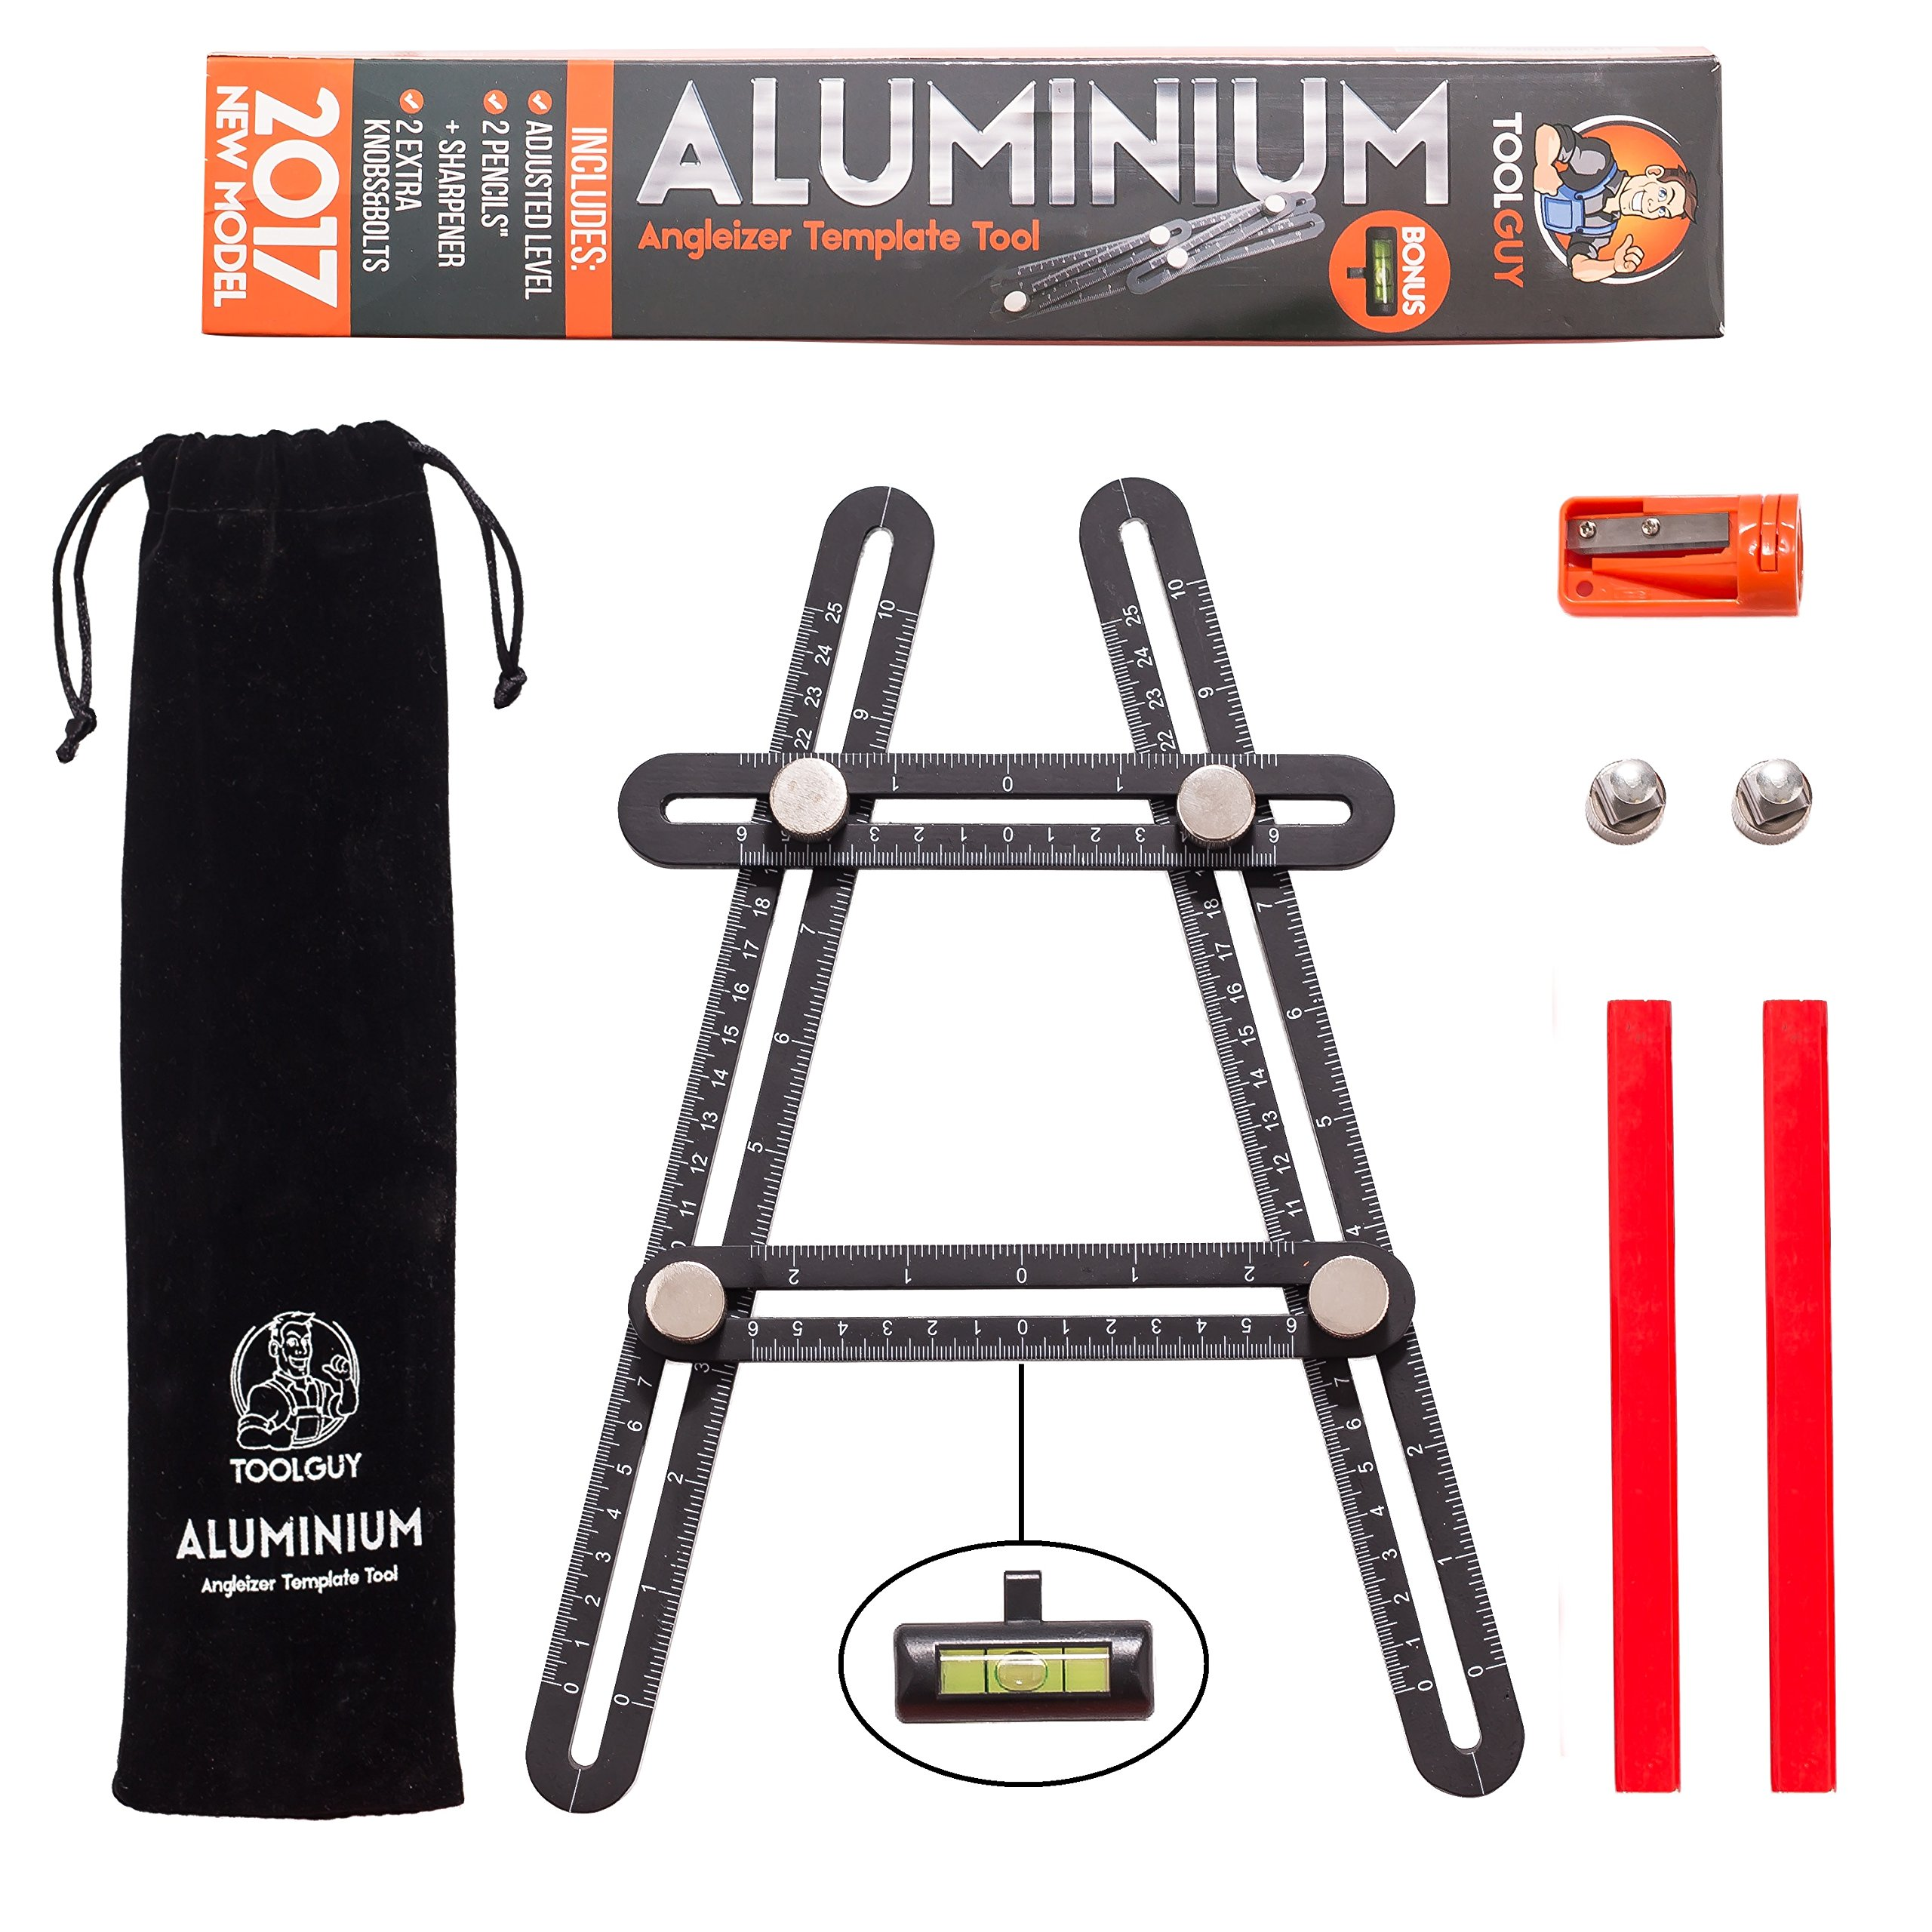 ToolGuy Angleizer Template Tool 100% Aluminum Upgraded with Customized Leveler, Metal Bolts and Knobs, Best For Builders, Handyman'S and Diy Ers